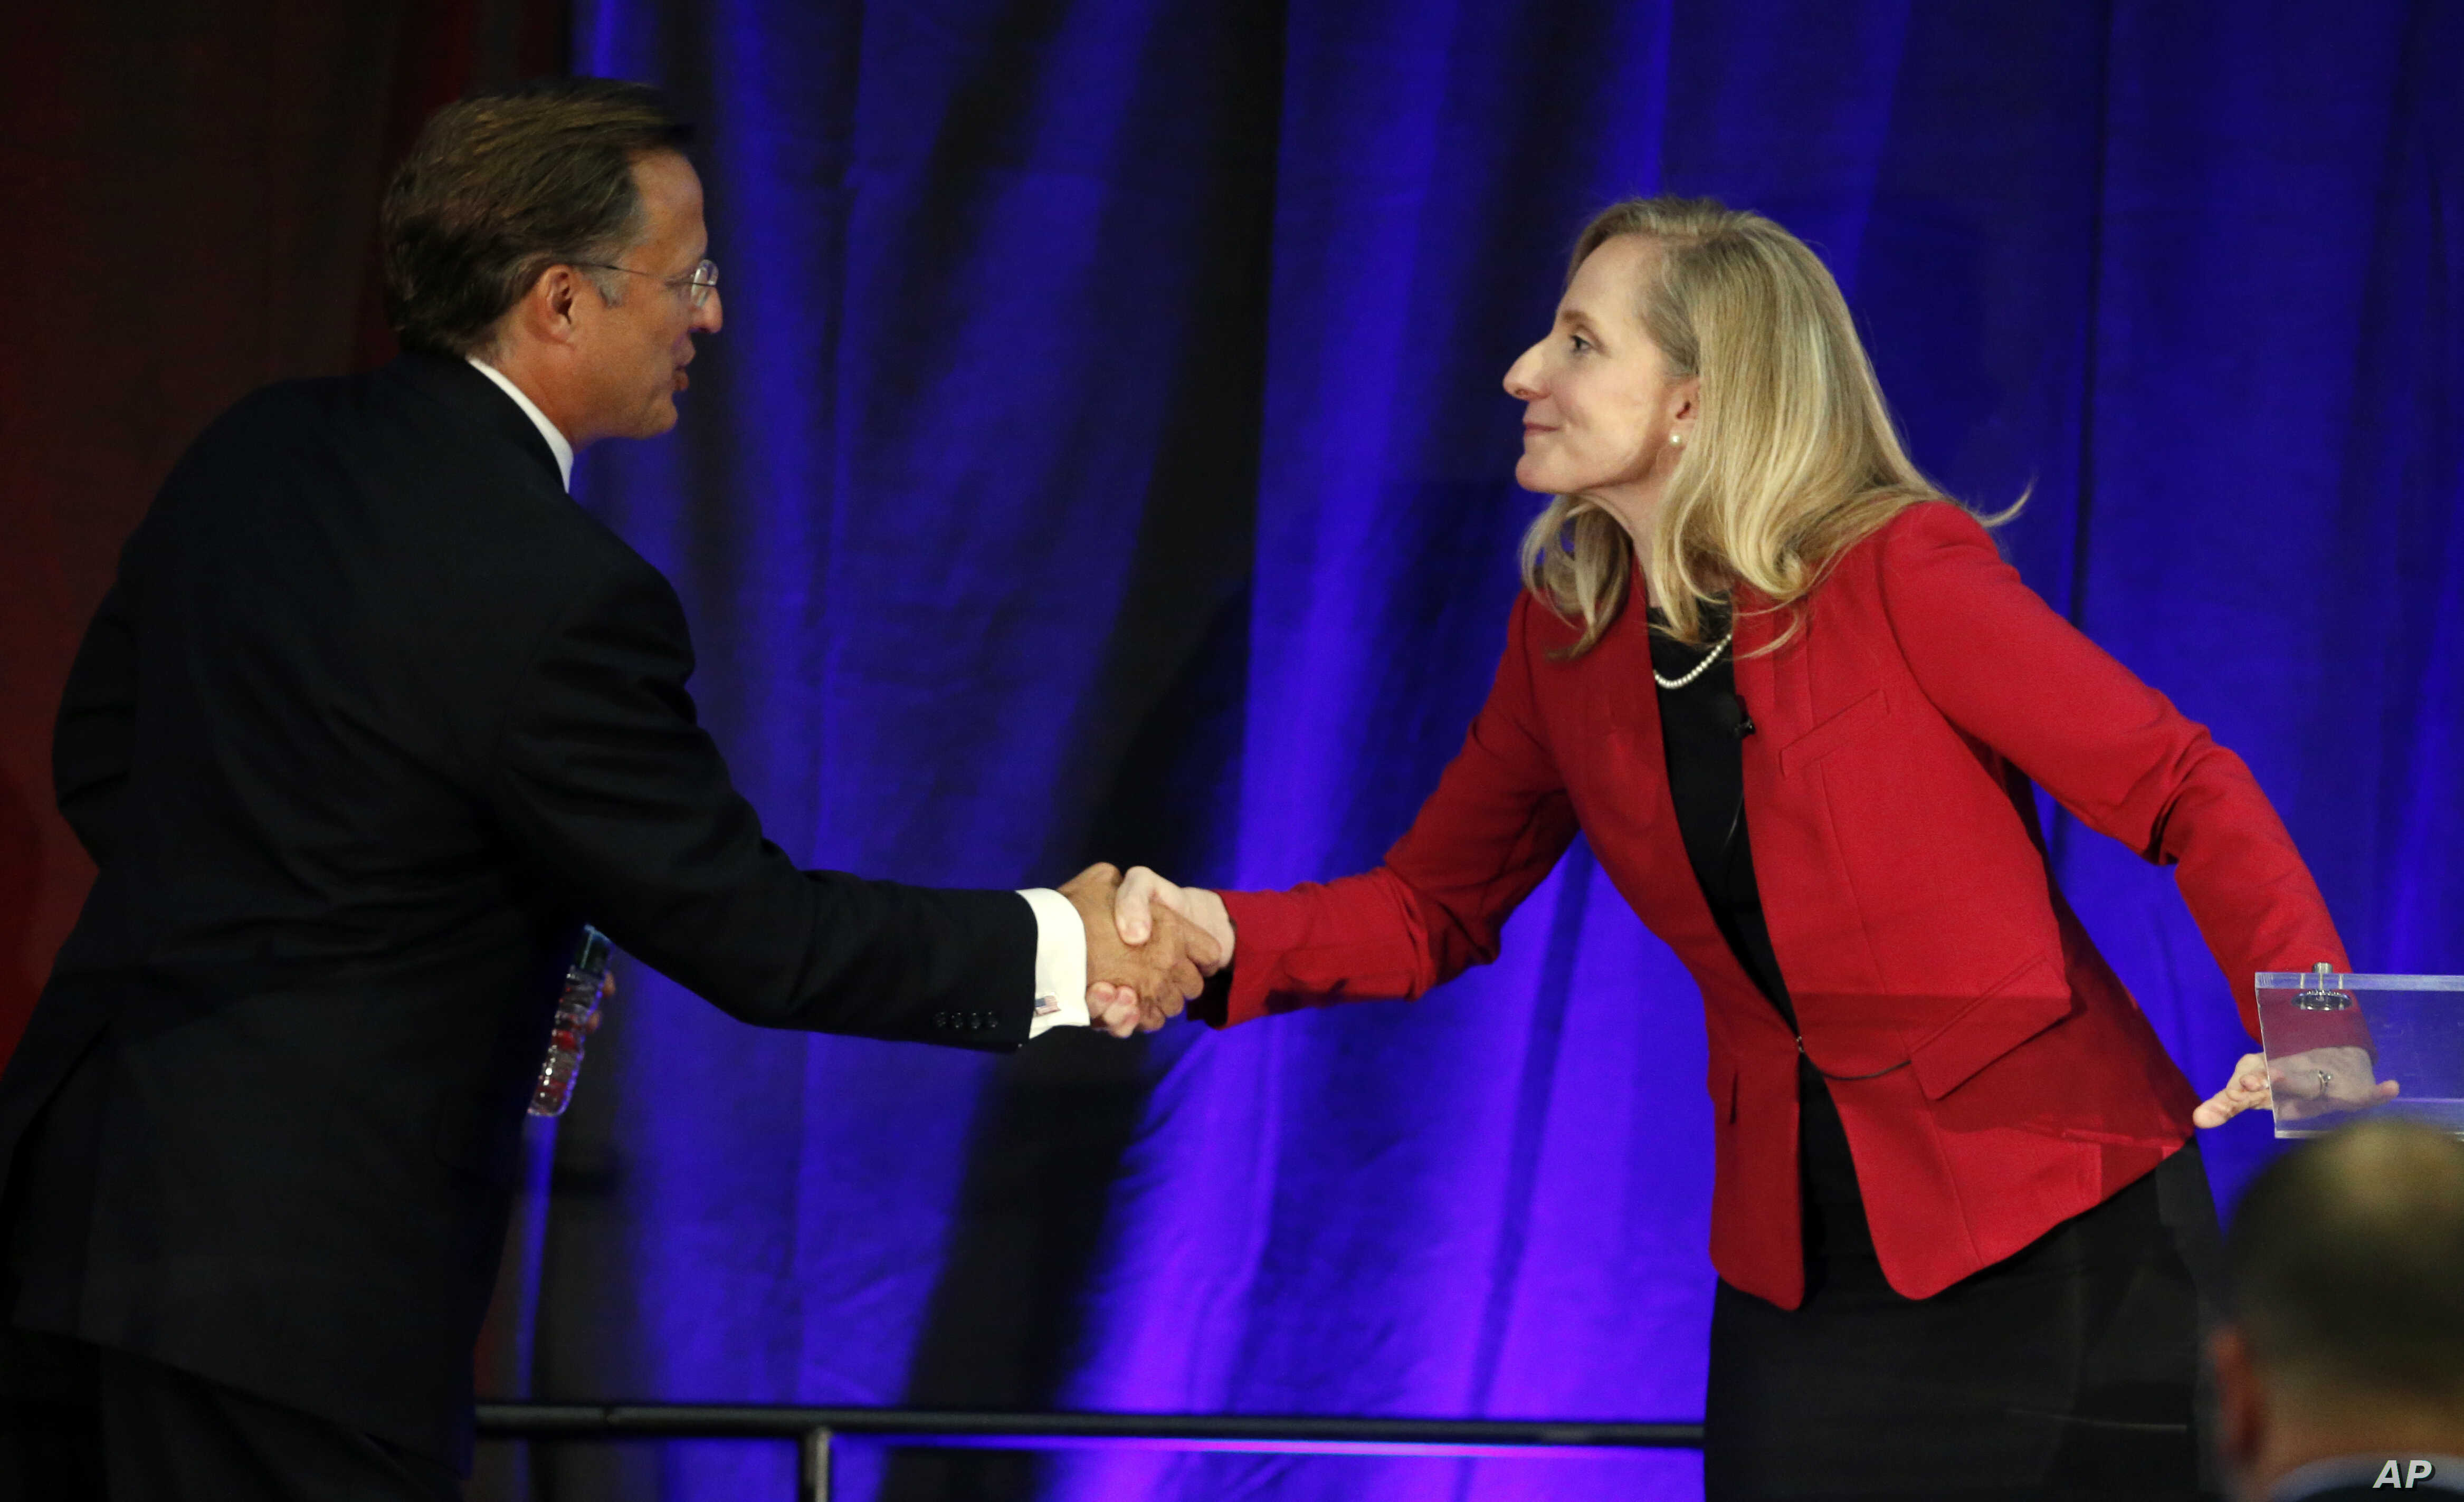 Virginia Congressman Dave Brat, R-Va., left, shakes hands with Democratic challenger Abigail Spanberger, right, after a debate at Germanna Community College in Culpeper, Virginia, Oct. 15, 2018.